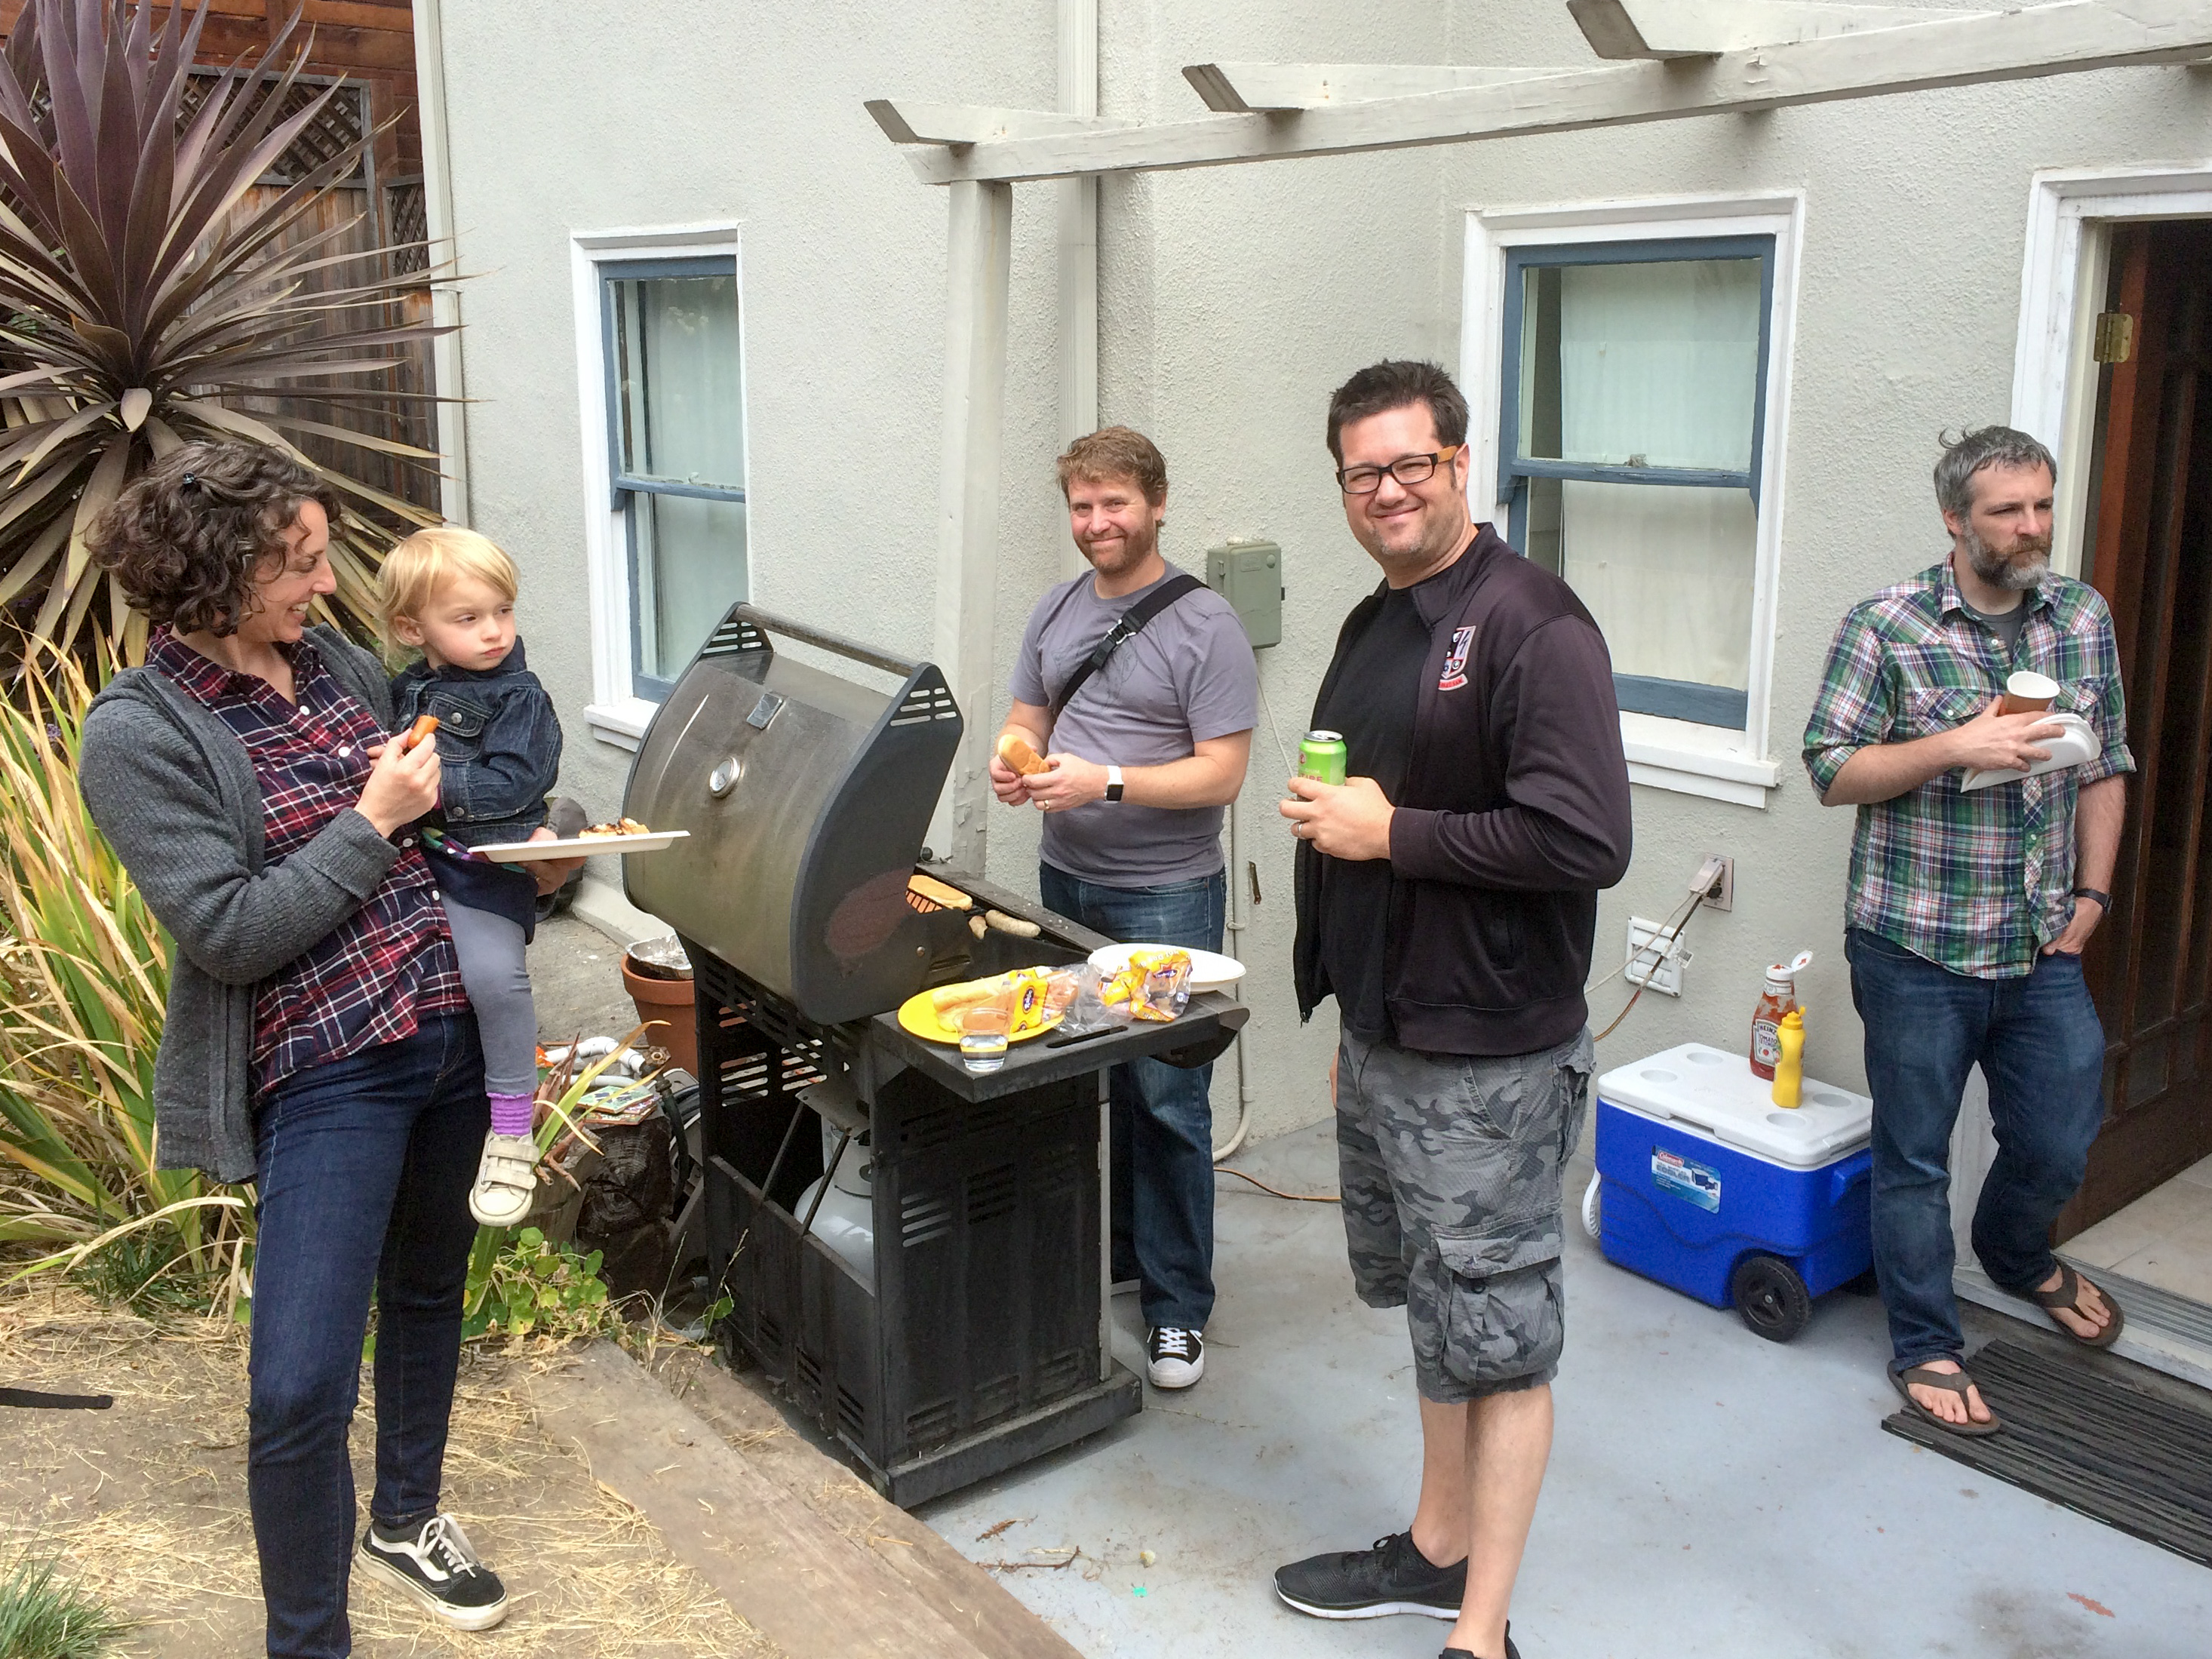 Master BBQer & Sundry Adults (plus cute A)